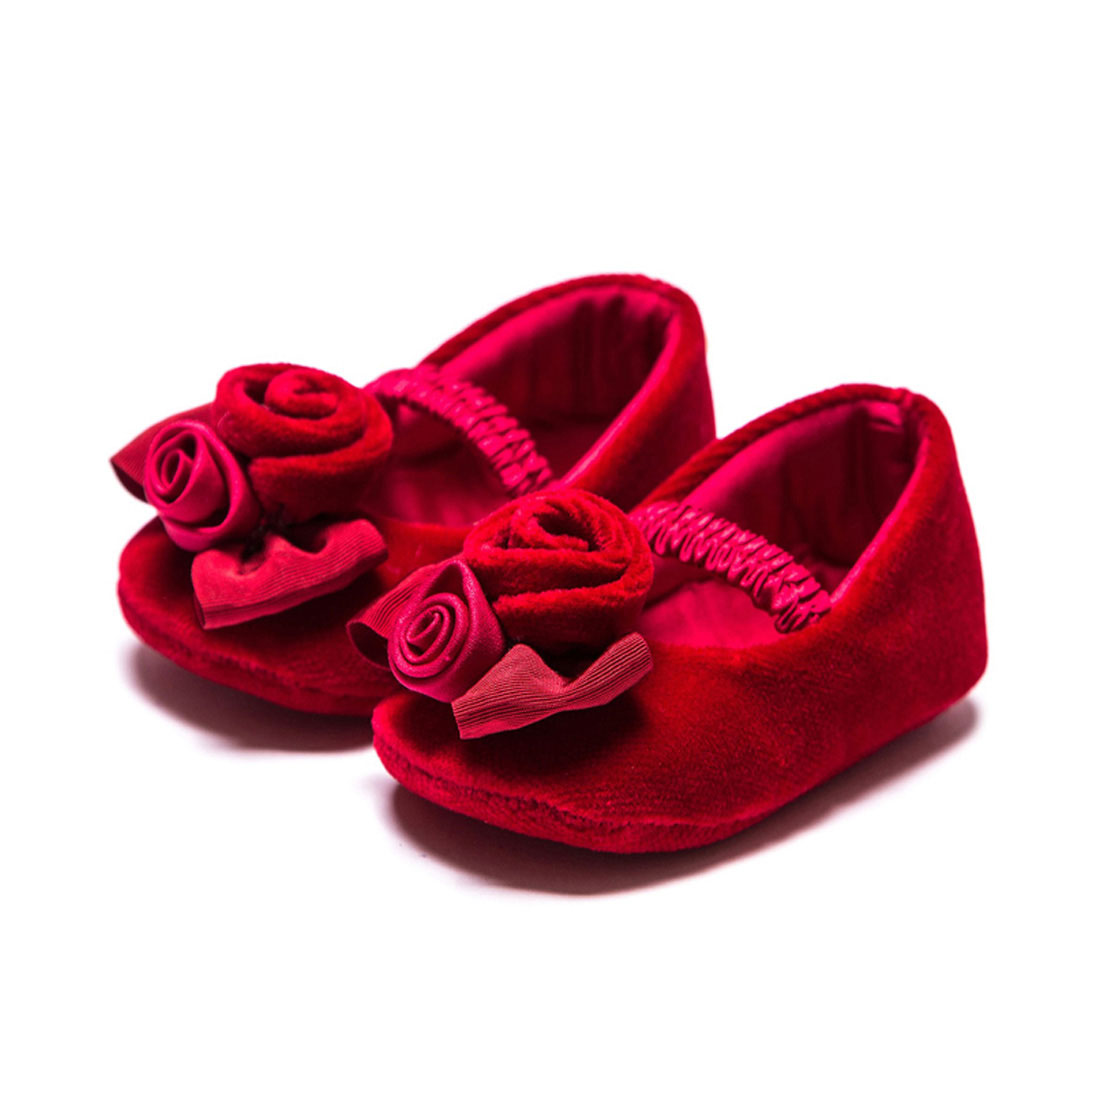 2017 baby red rose girl soft-soled flat shoes baby toddler shoes YH1143